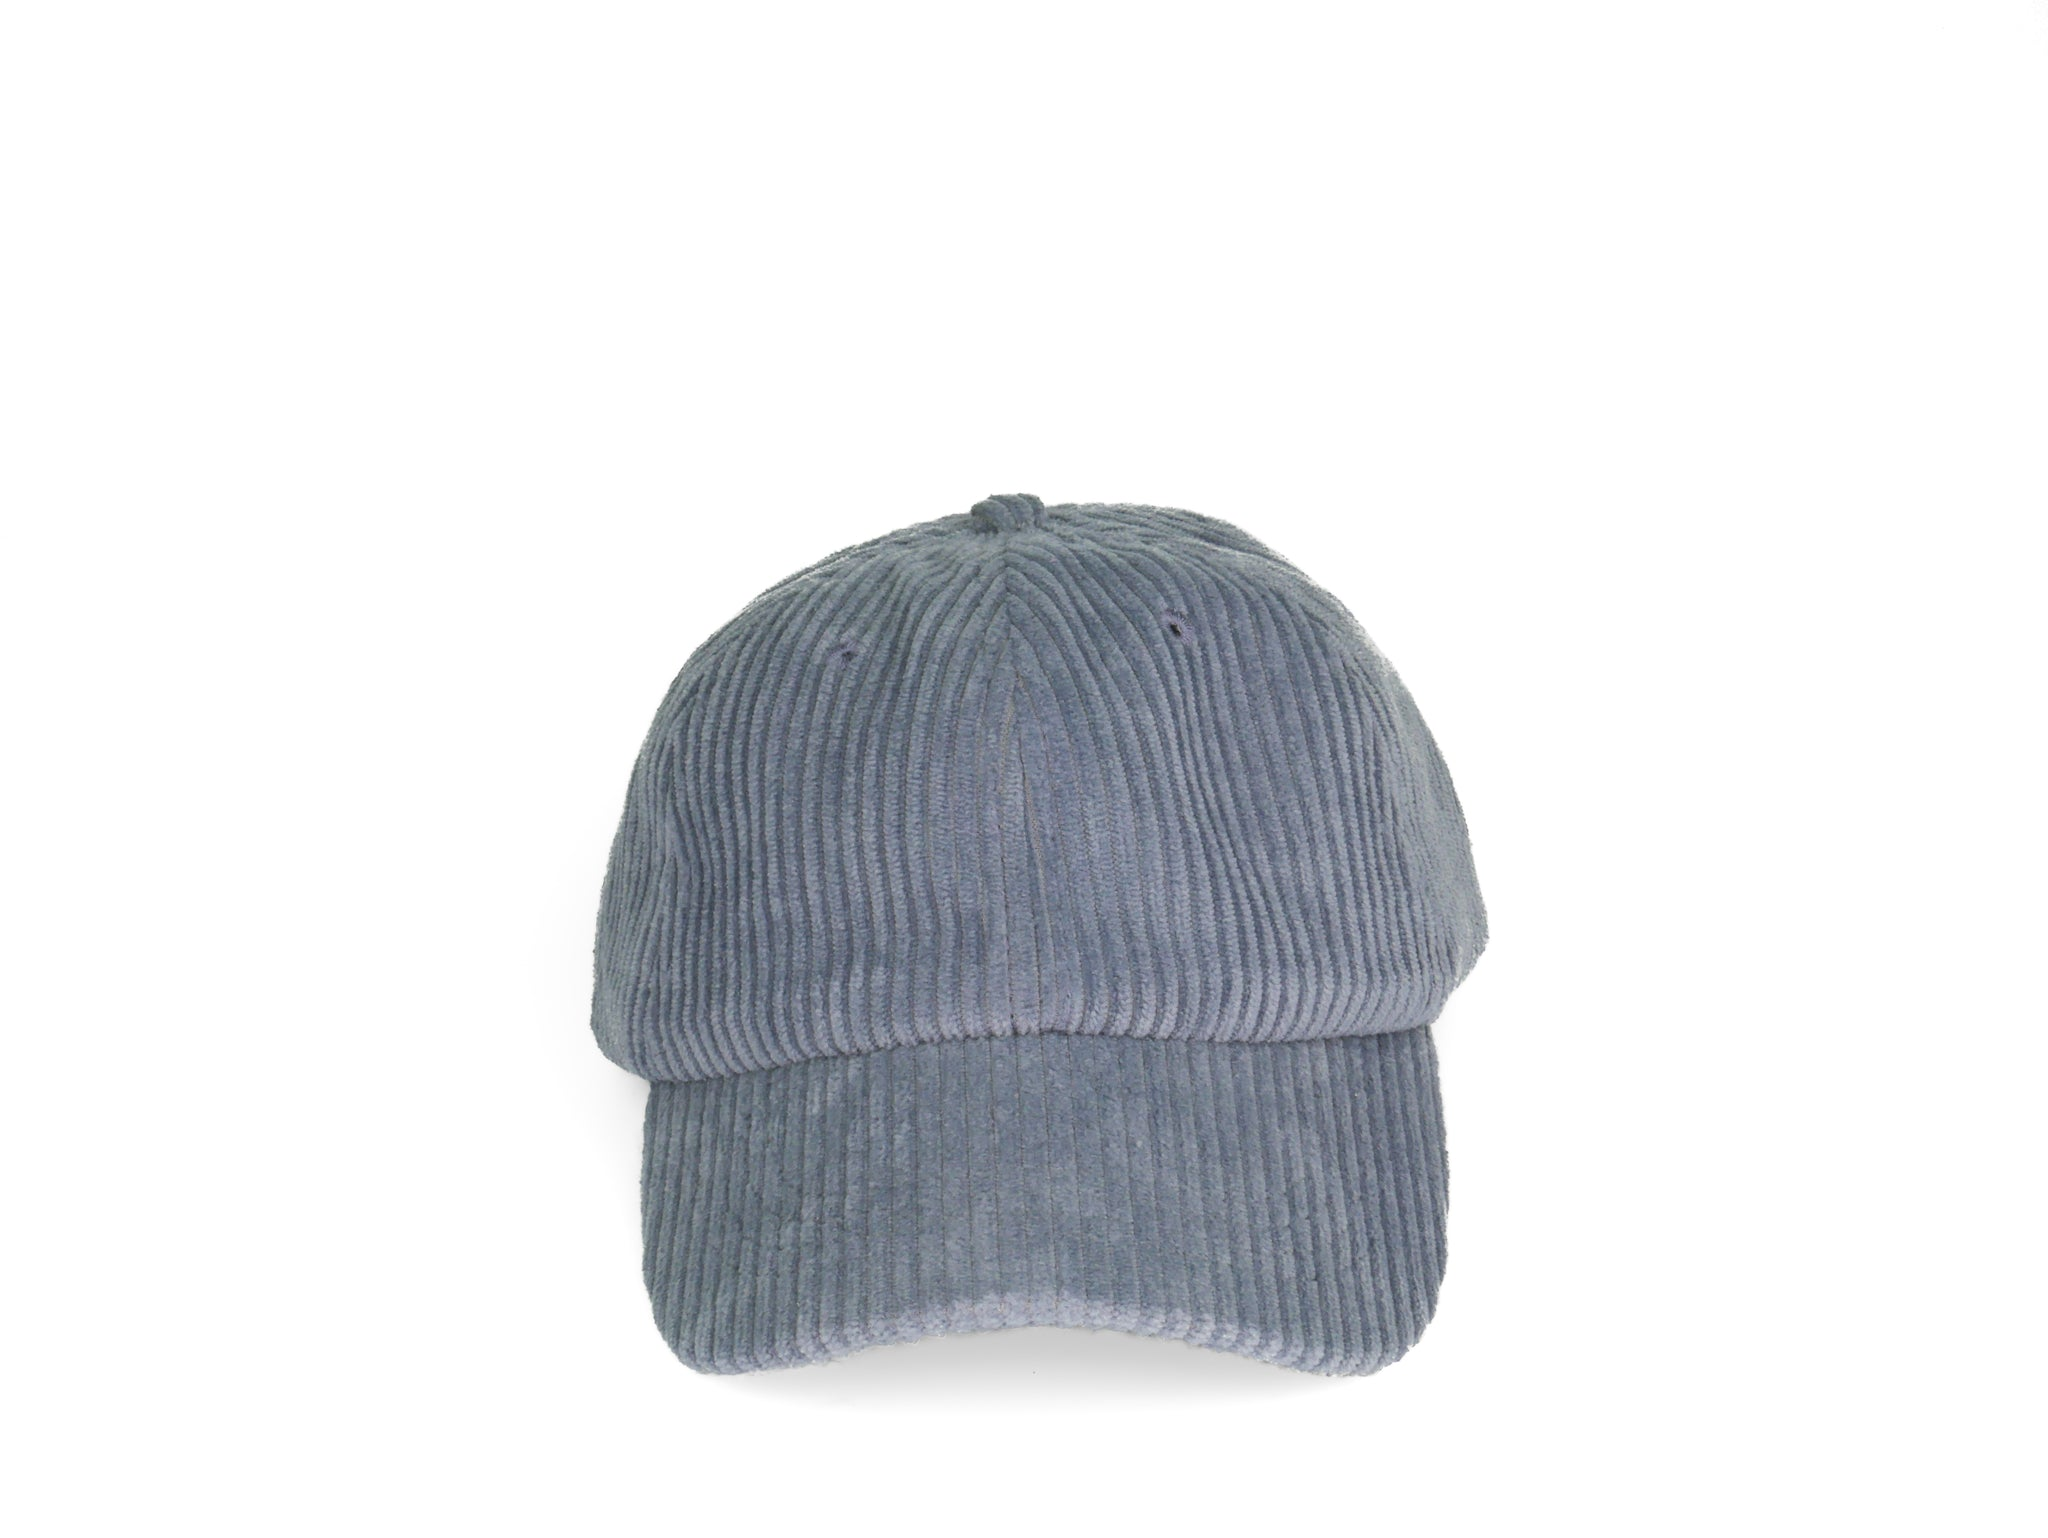 Thick Corduroy Dad Hat - Slate